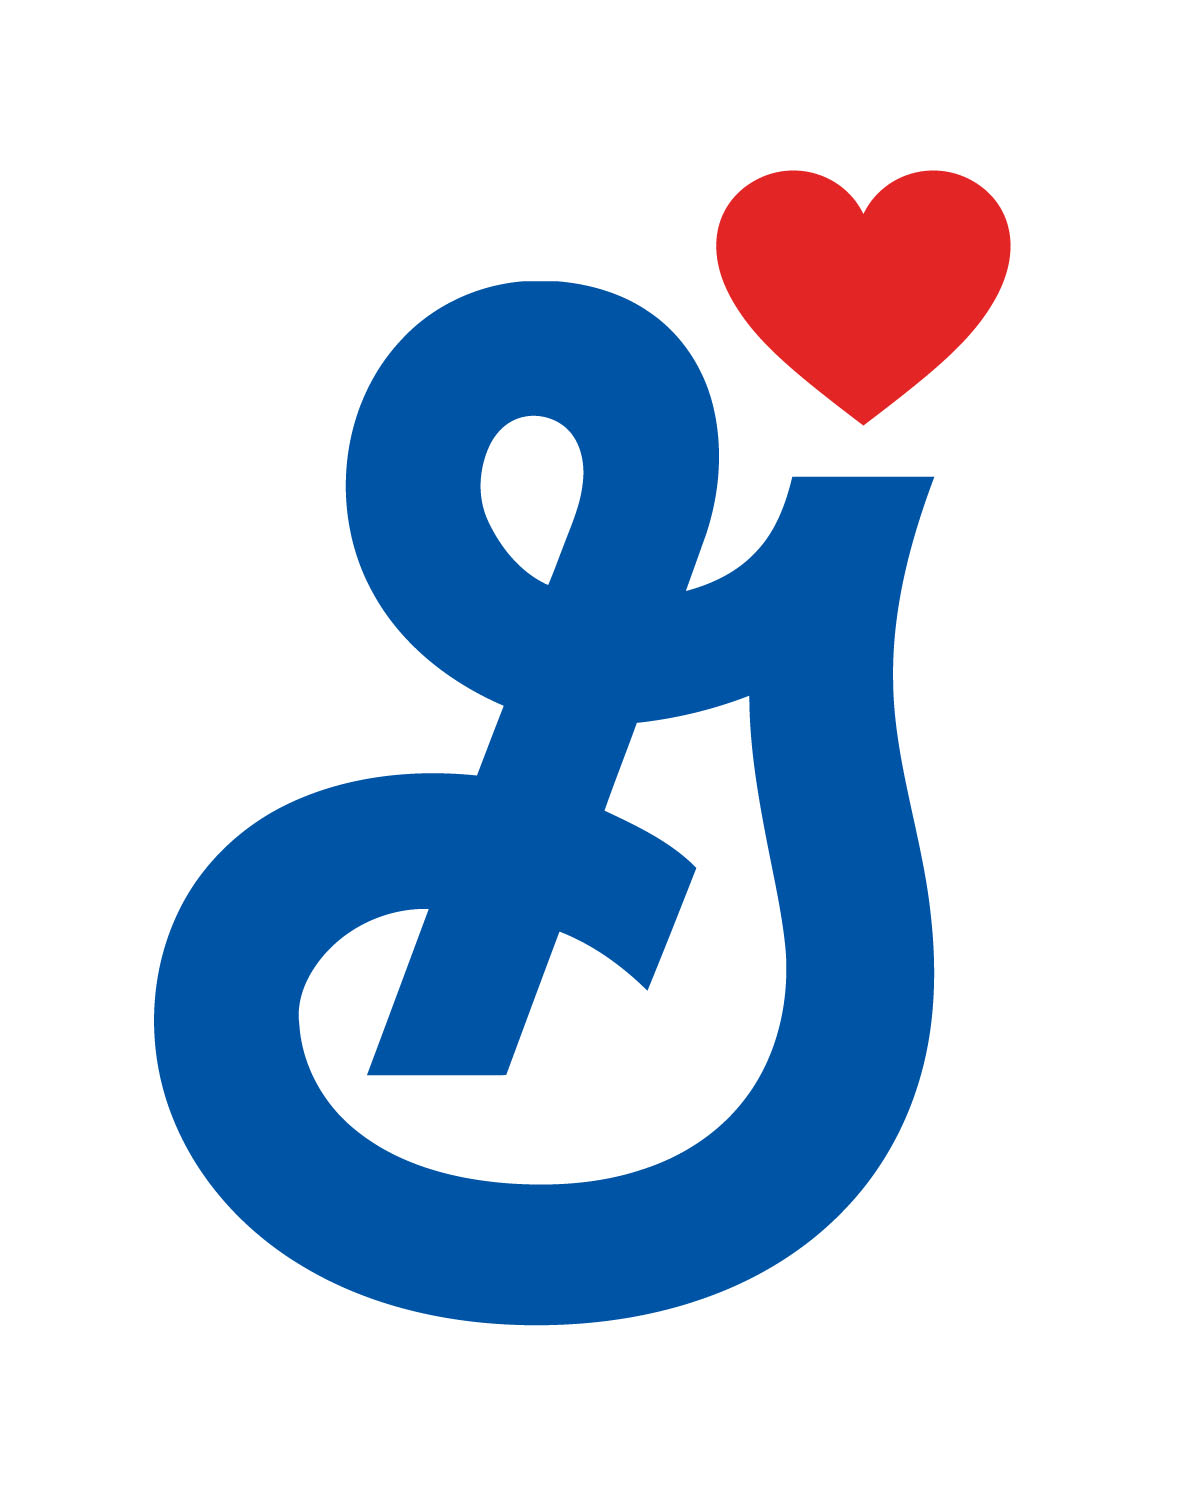 People are at the heart of latest General Mills logo